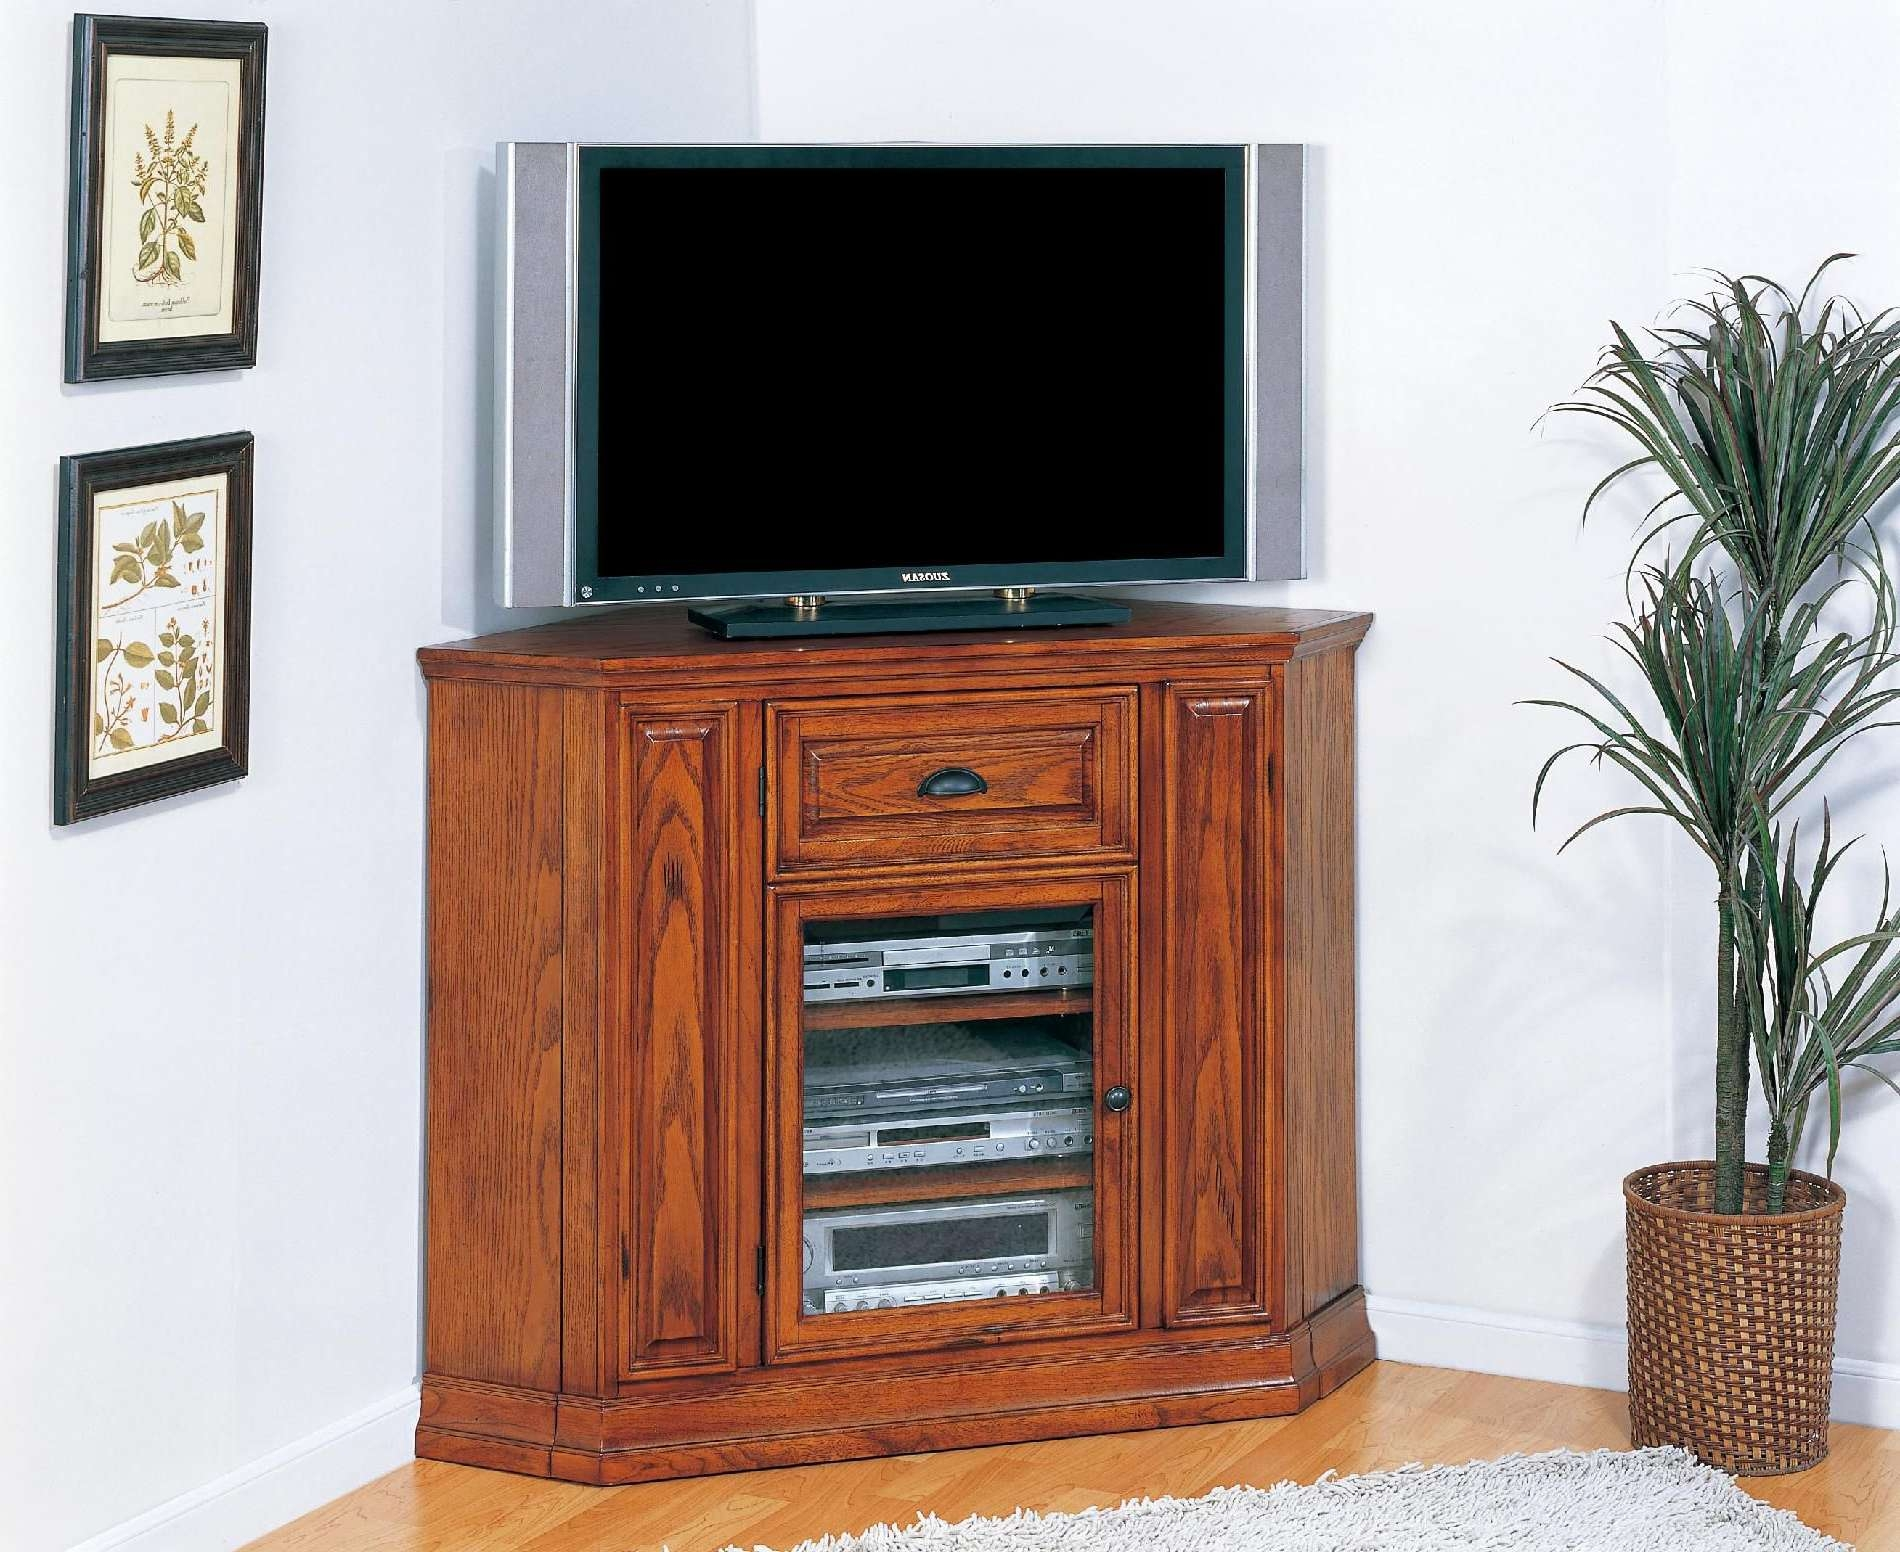 Tv Stand : Tall Narrow Tv Stands For Flat Screens And Standstall Within Corner Oak Tv Stands For Flat Screen (View 13 of 15)